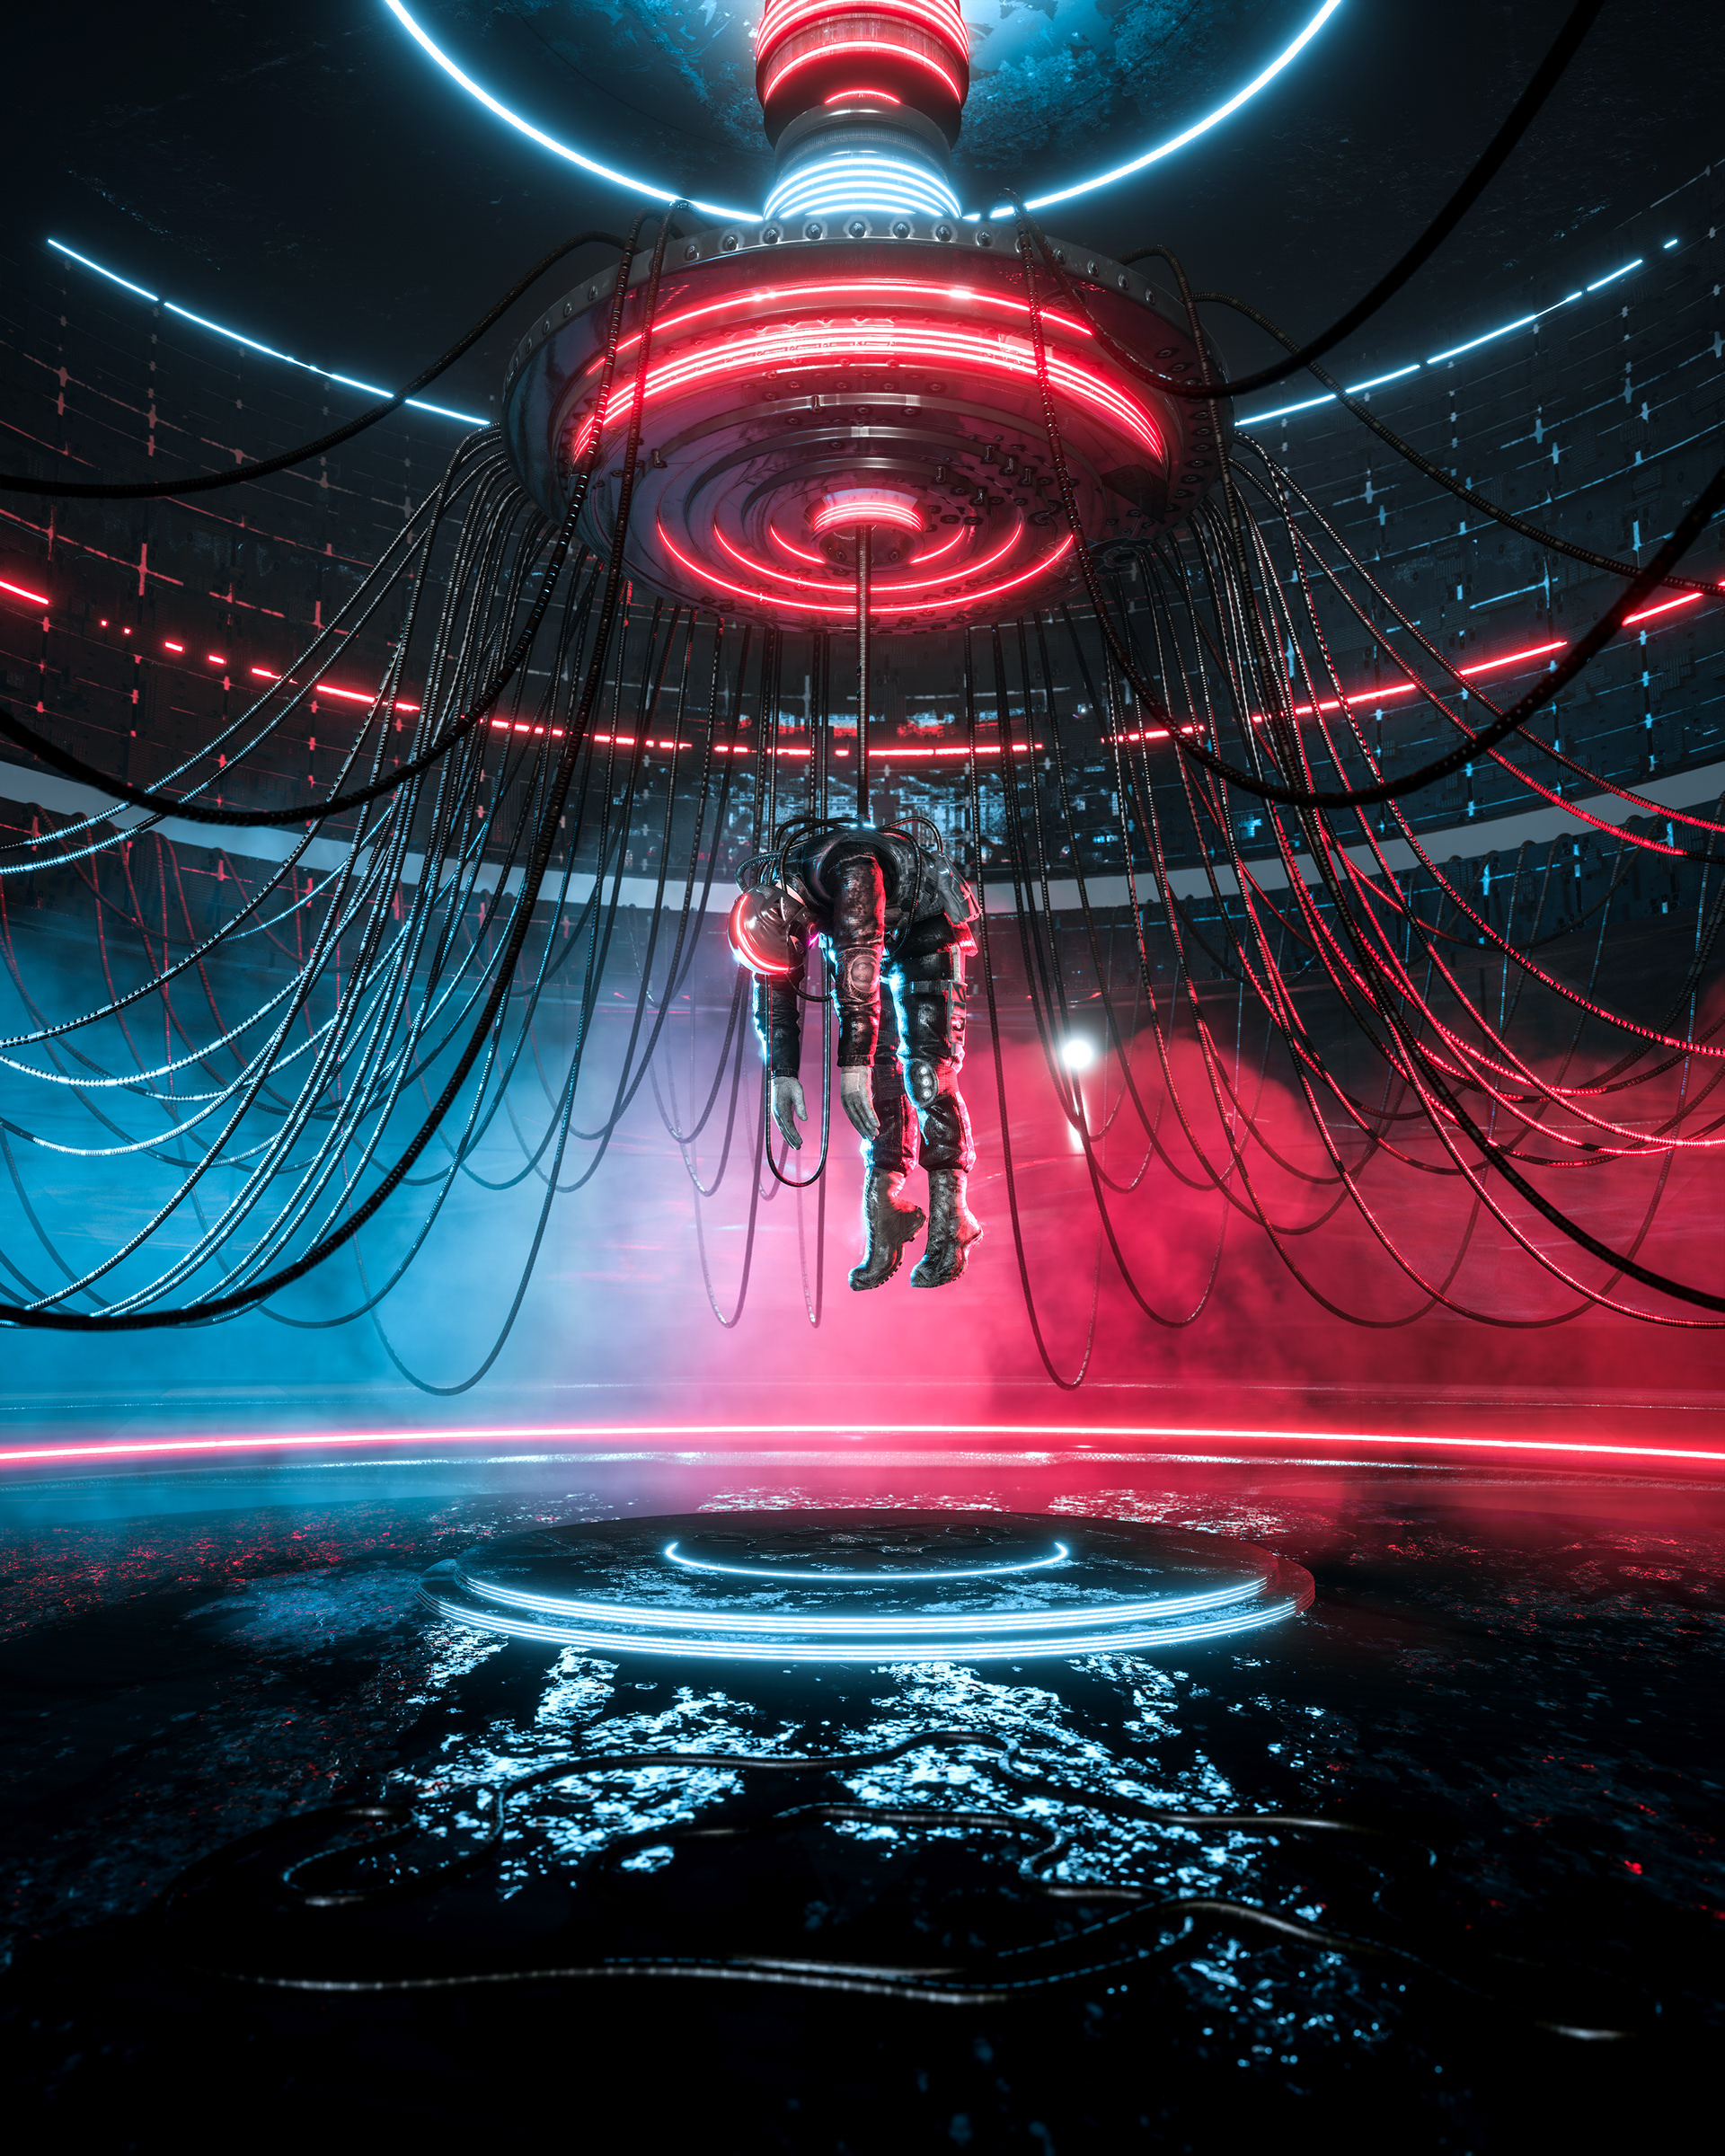 Inside Area 51, a digital series by engwind